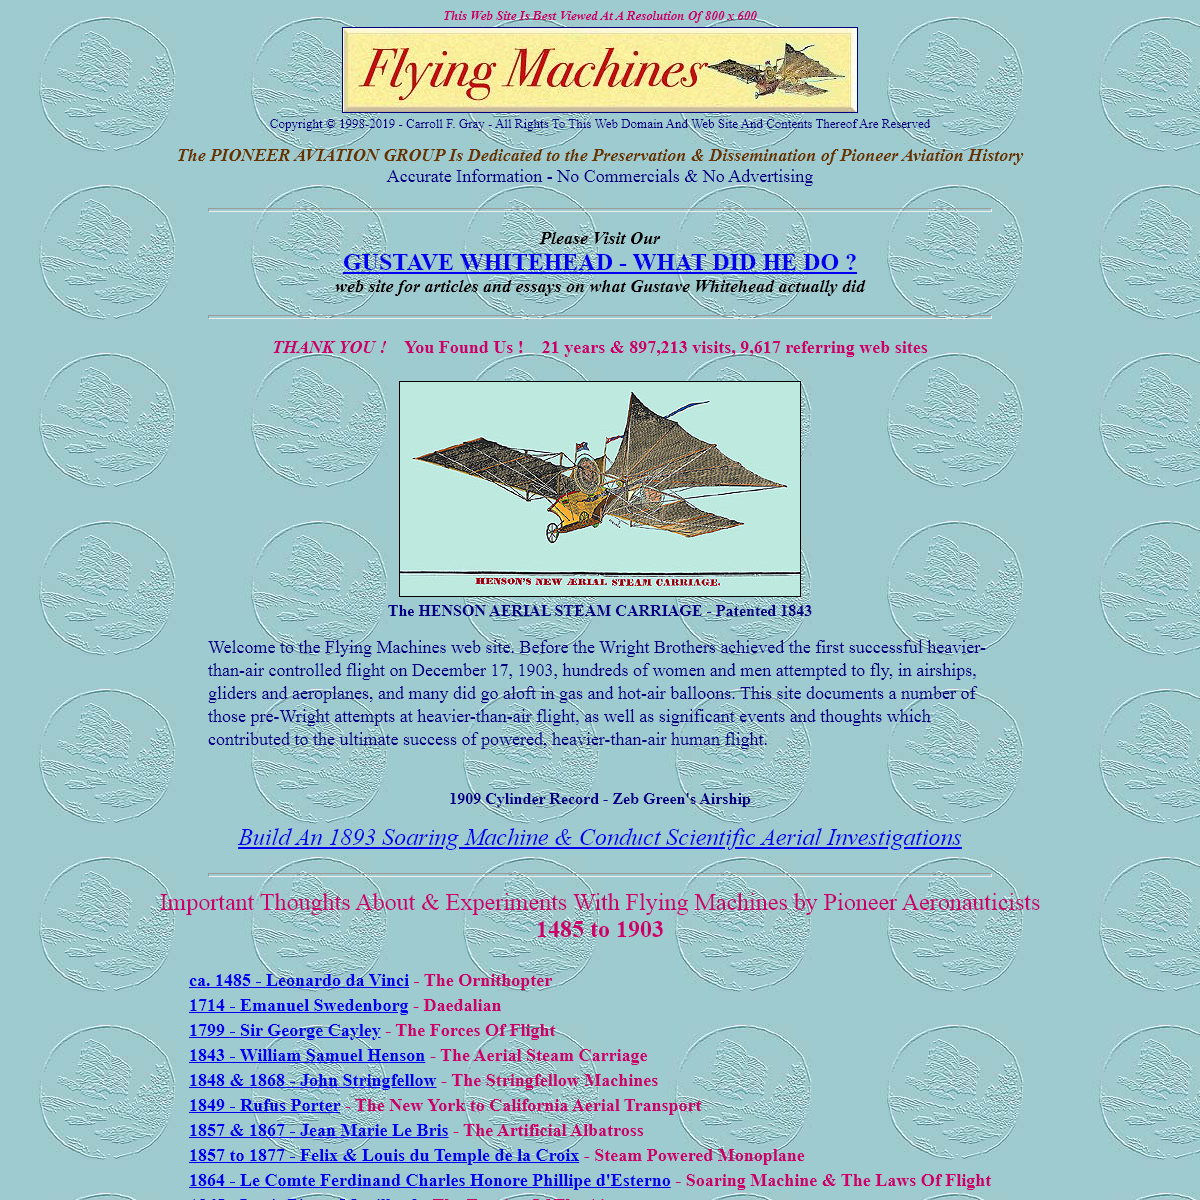 The FLYING MACHINES Web Site